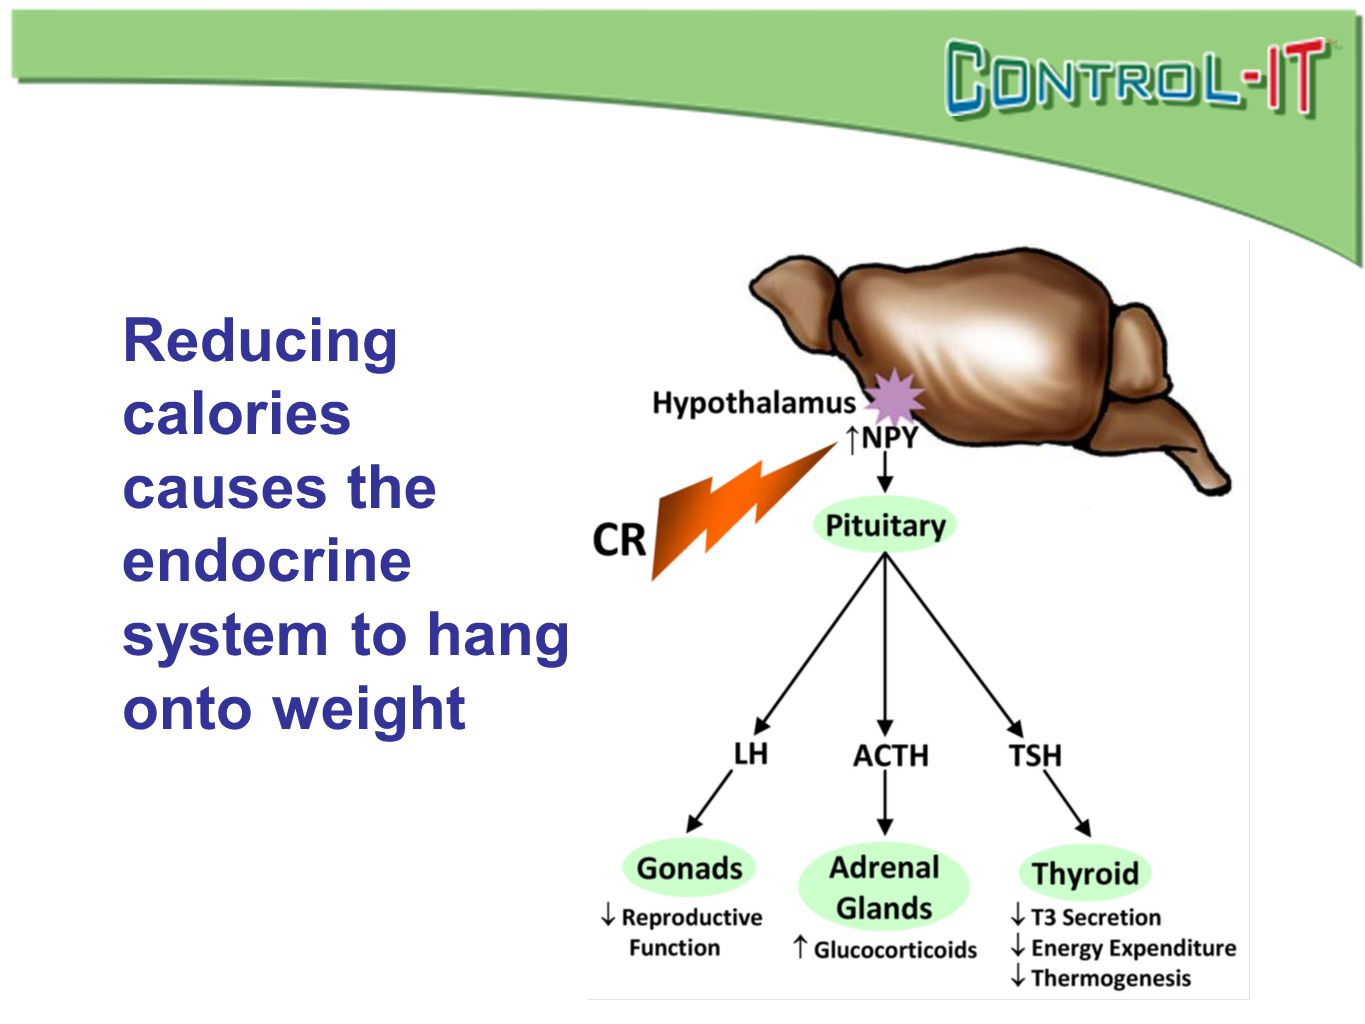 Reducing calories causes the endocrine system to hang onto weight